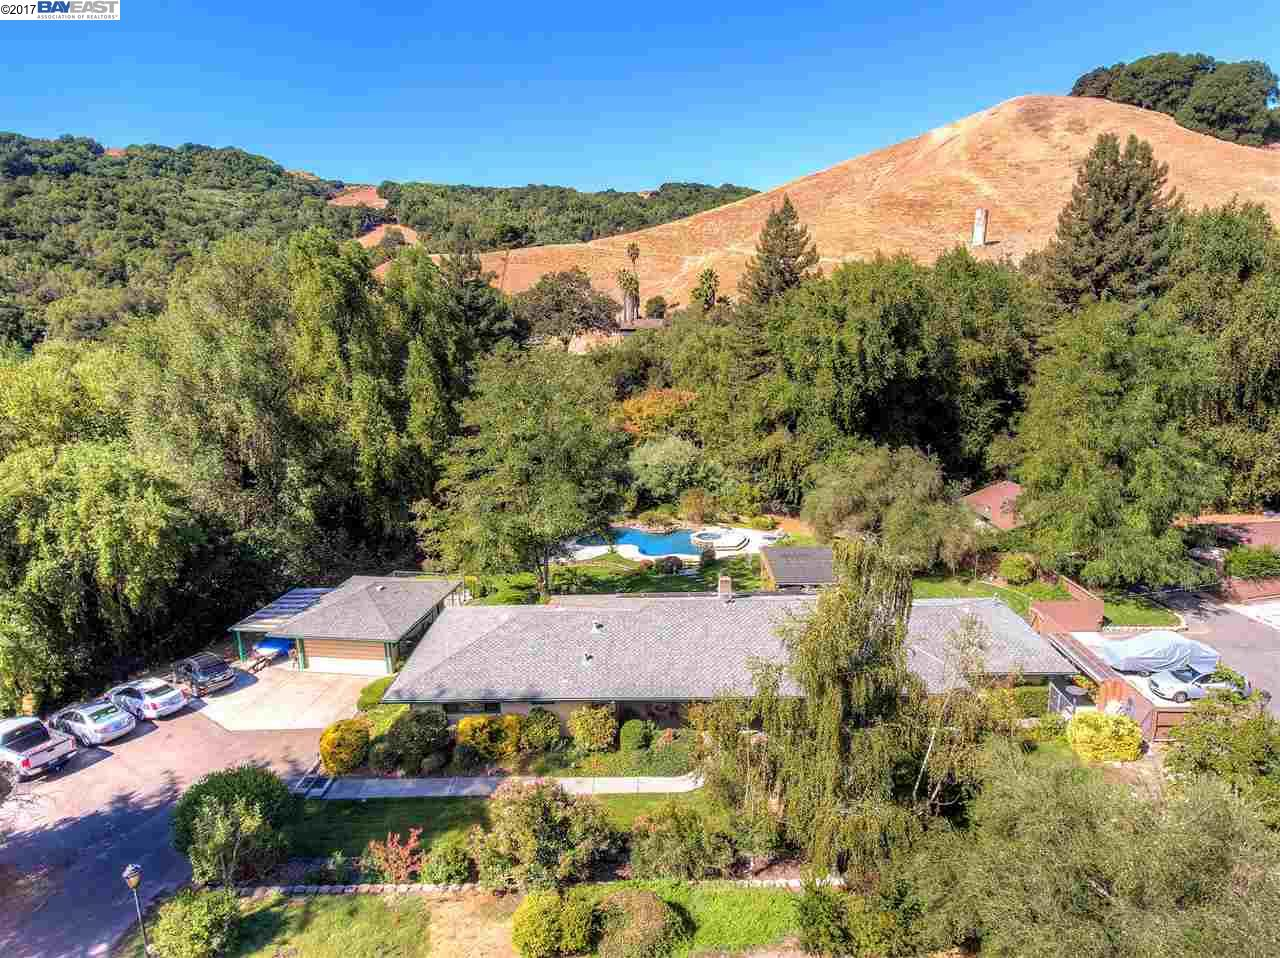 Multi-Family Home for Sale at 9556 Crow Canyon Road 9556 Crow Canyon Road Castro Valley, California 94552 United States